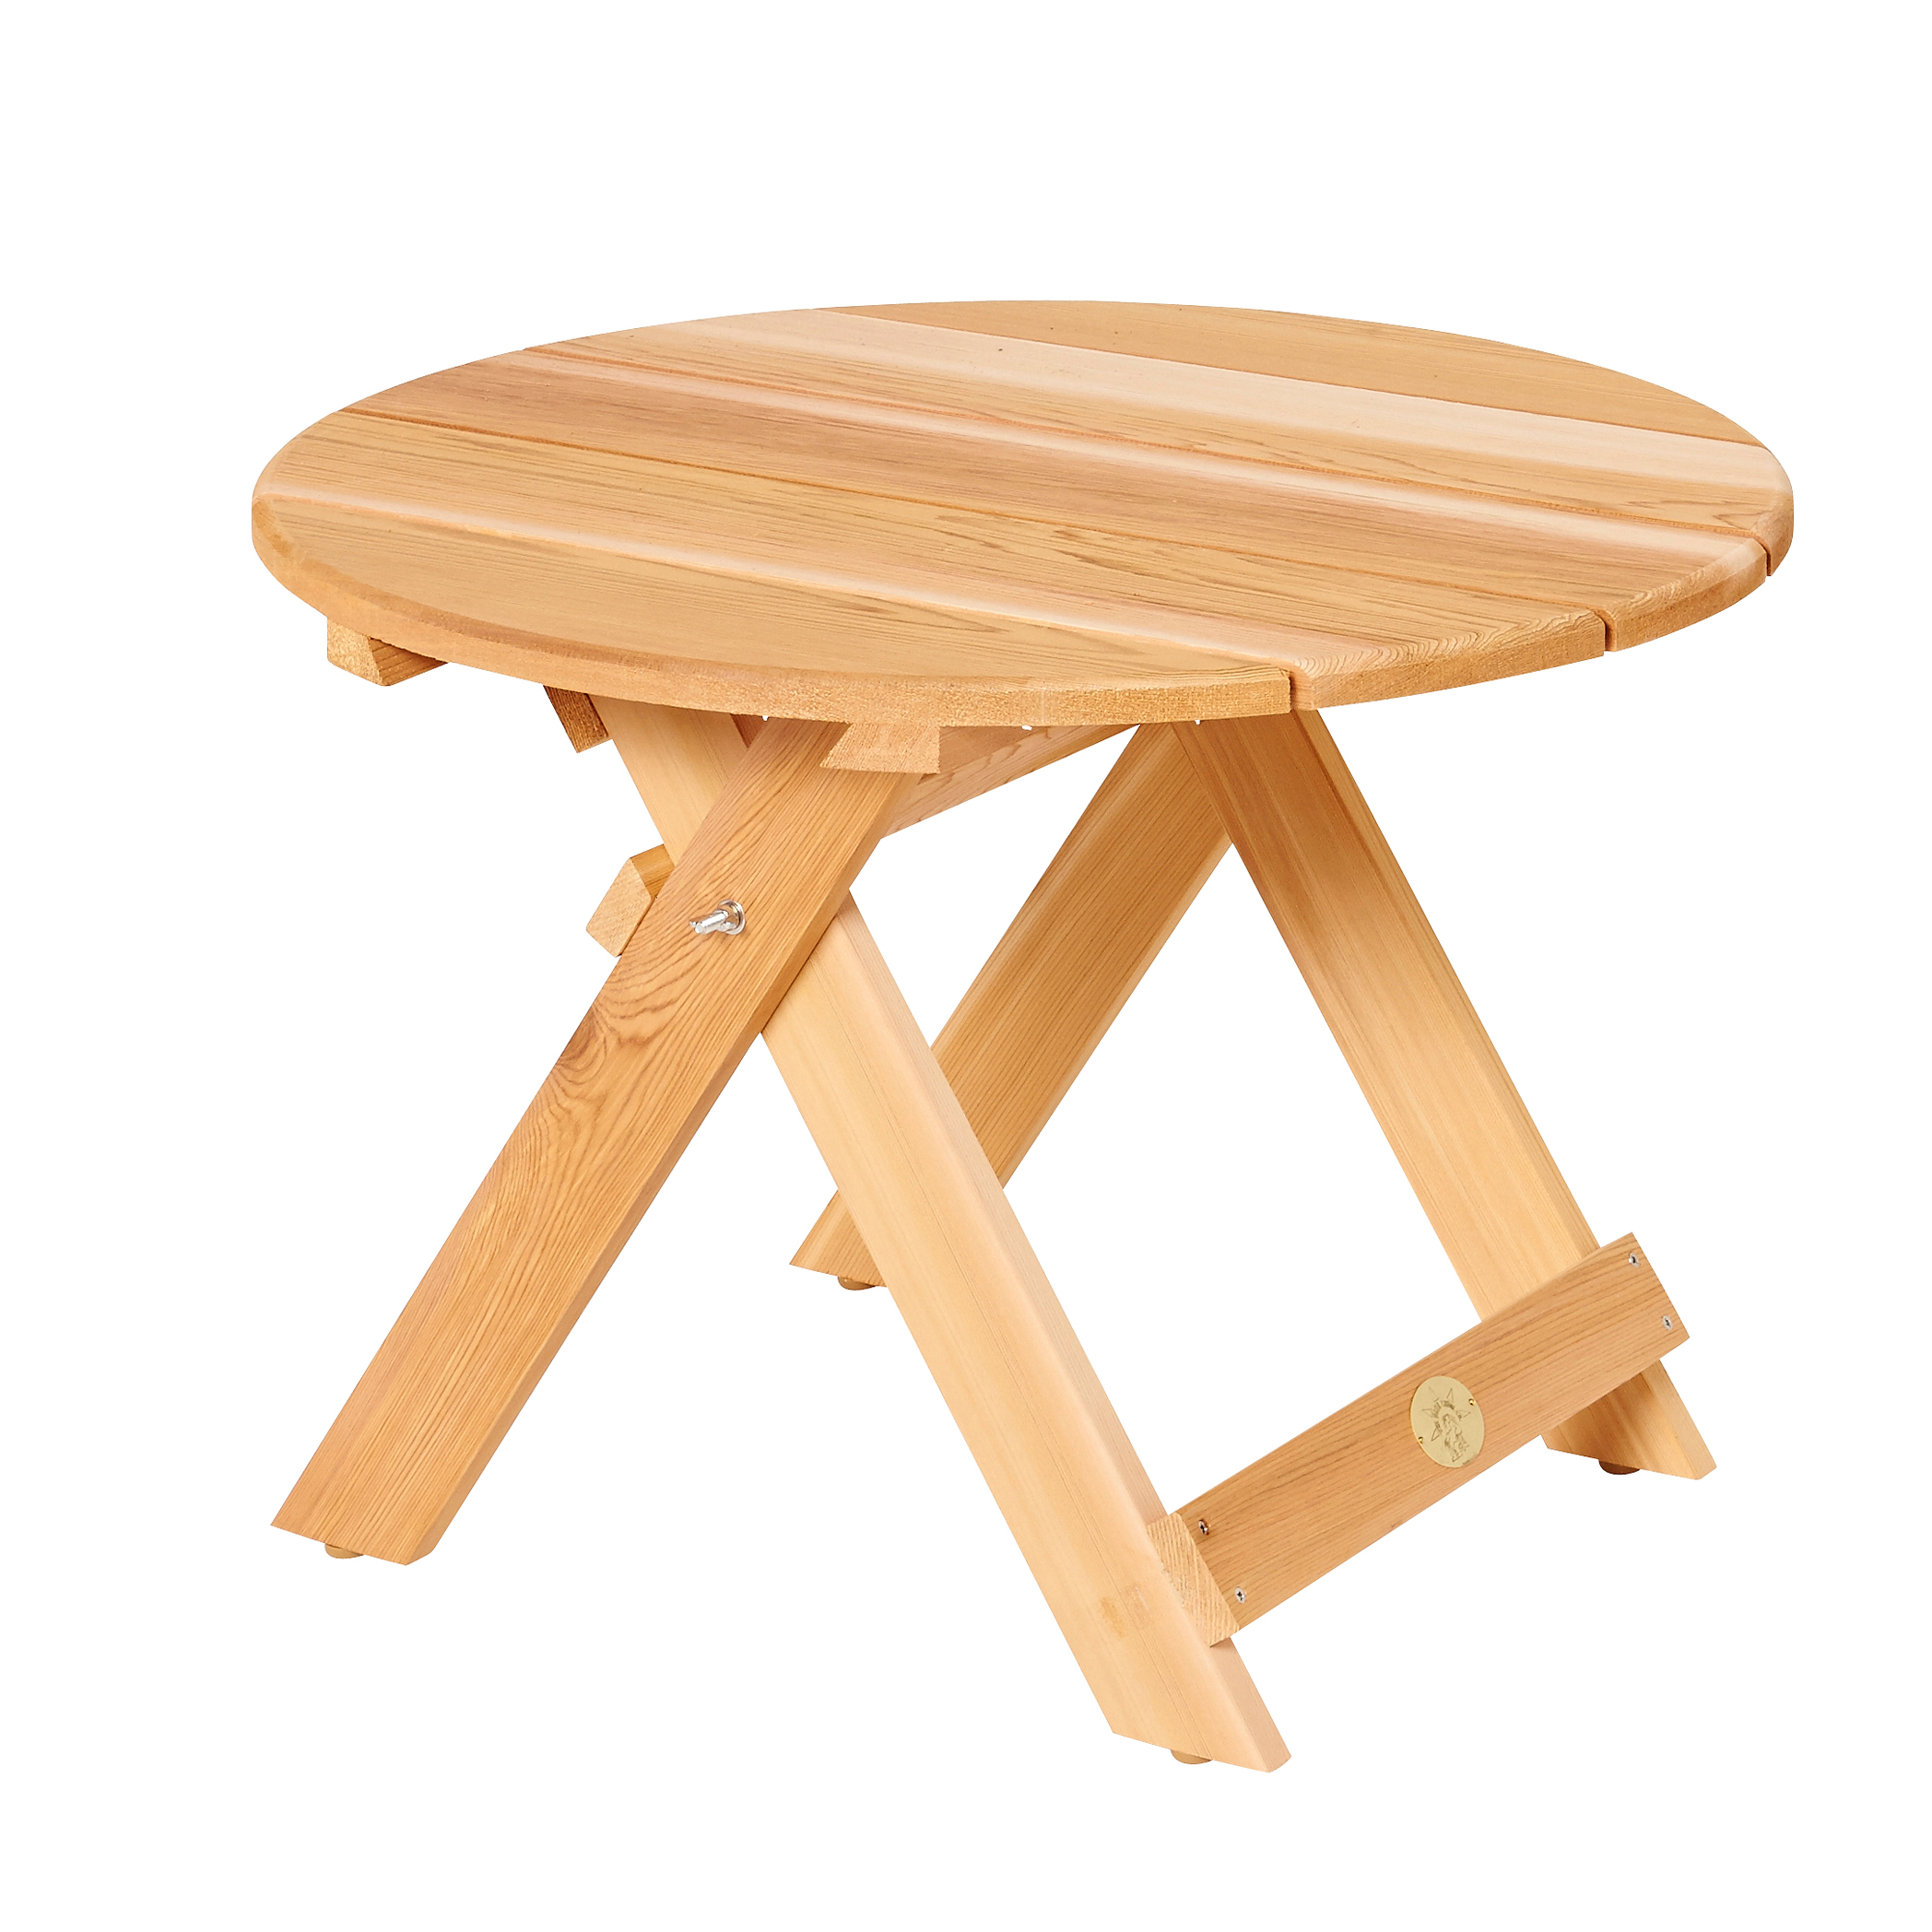 Bear Chair Folding Table / Falttisch BC02C, Durchmesser 70cm